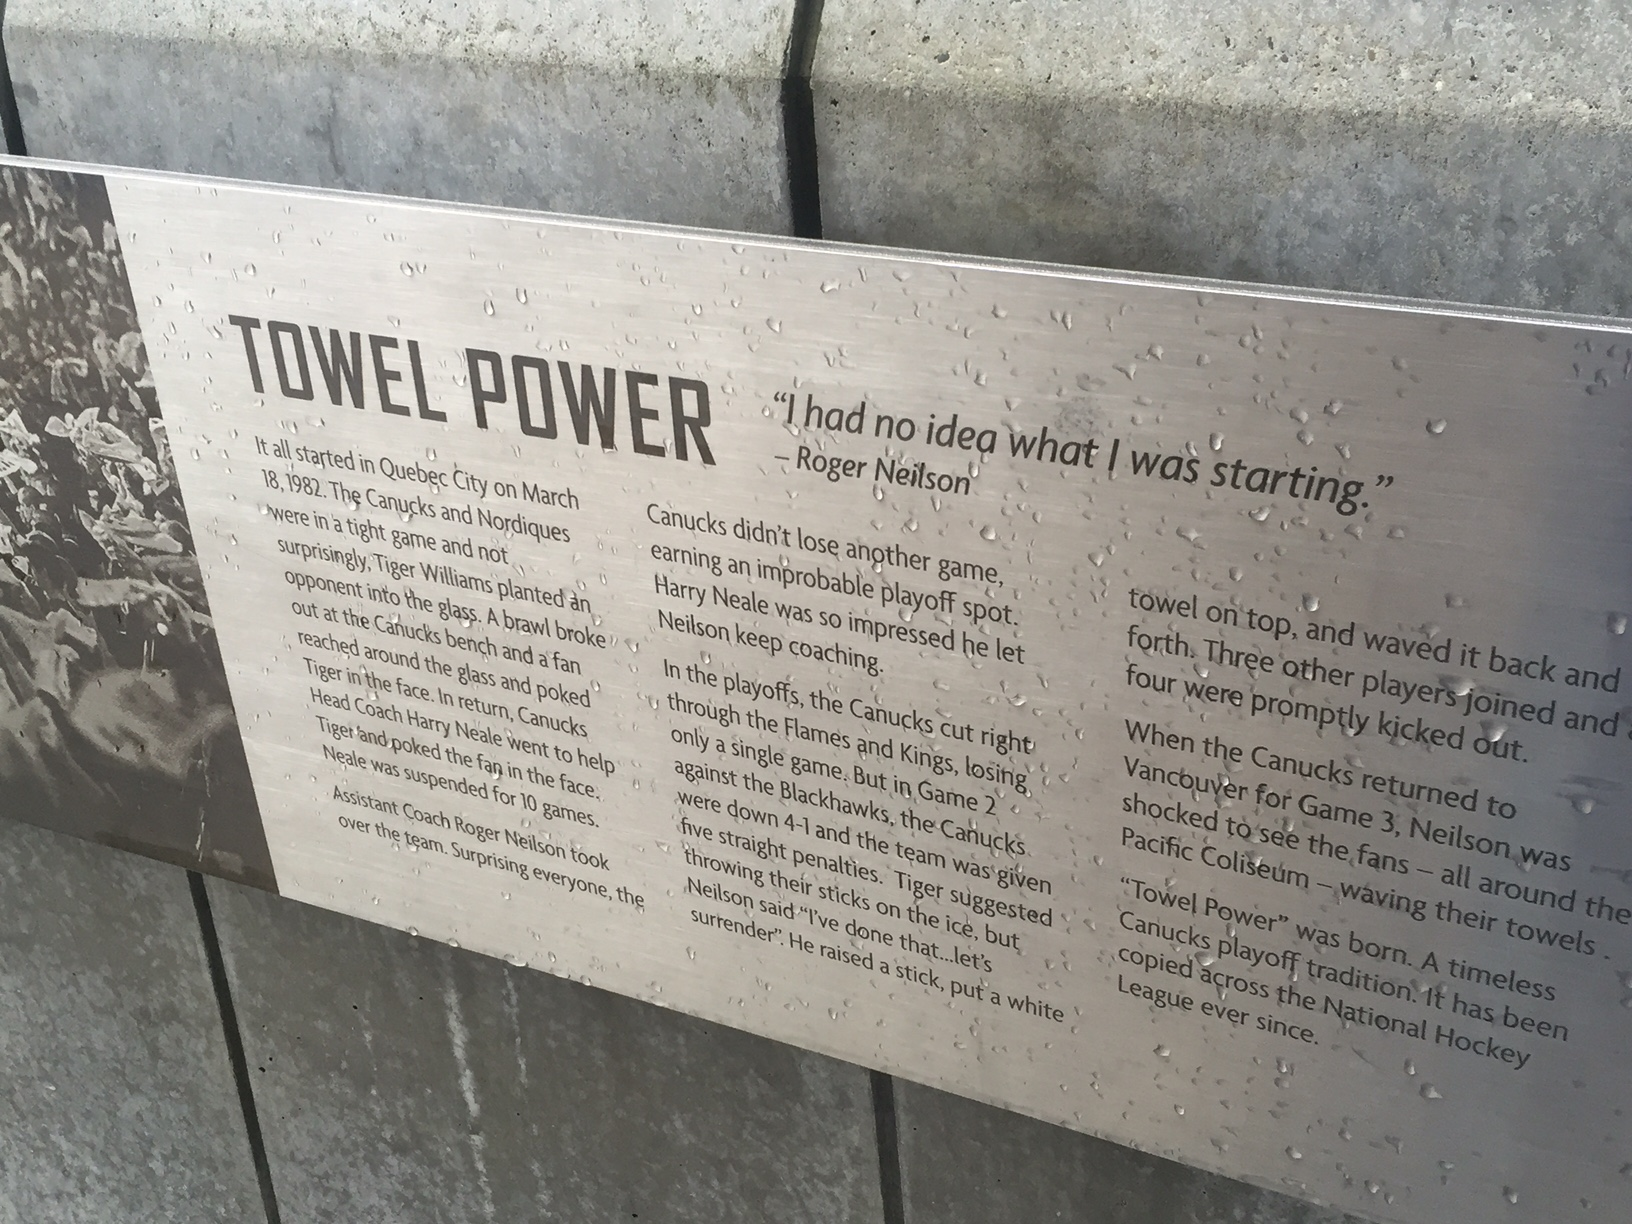 The explanation of Towel Power on the Roger Neilson statue in Vancouver (Mike Harrington/Buffalo News)